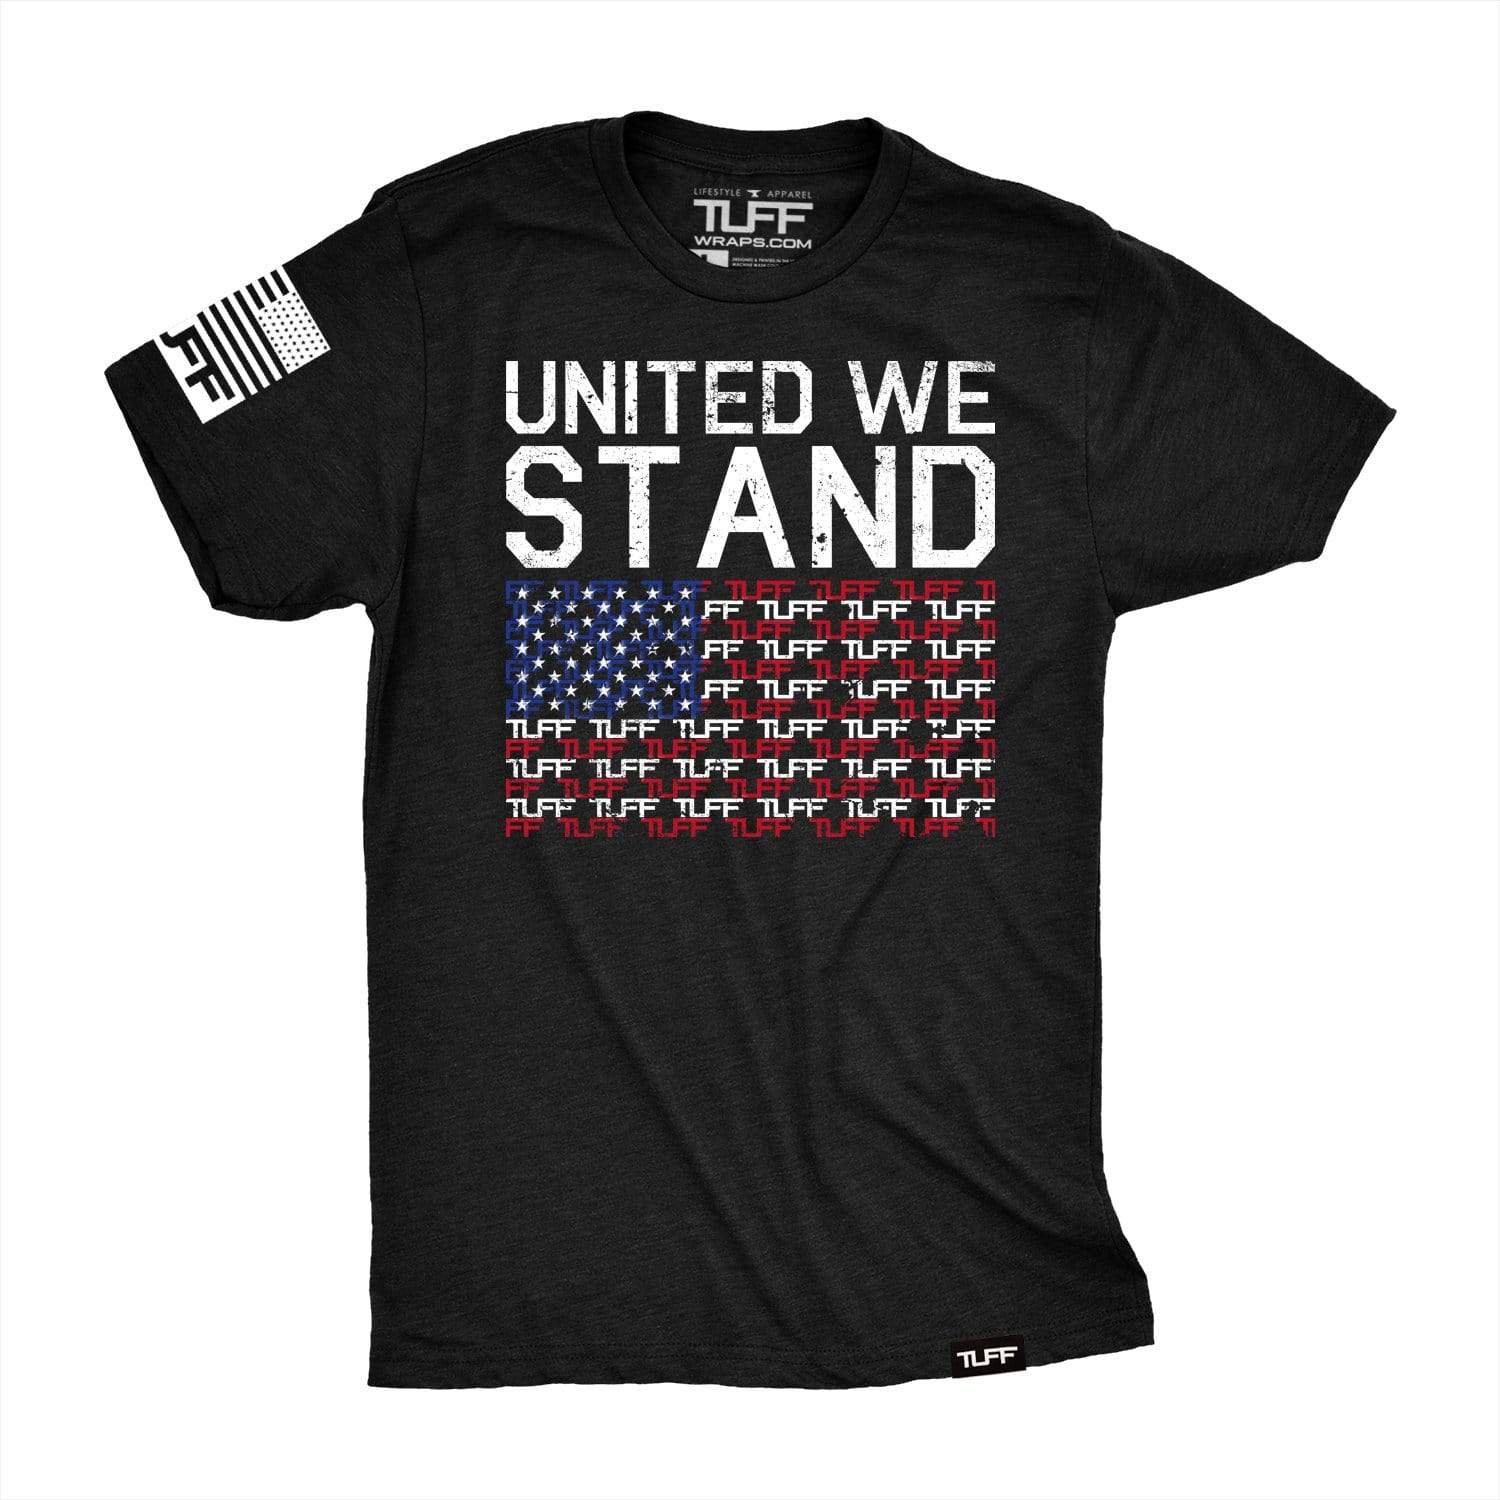 United We Stand TUFF Tee S TuffWraps.com